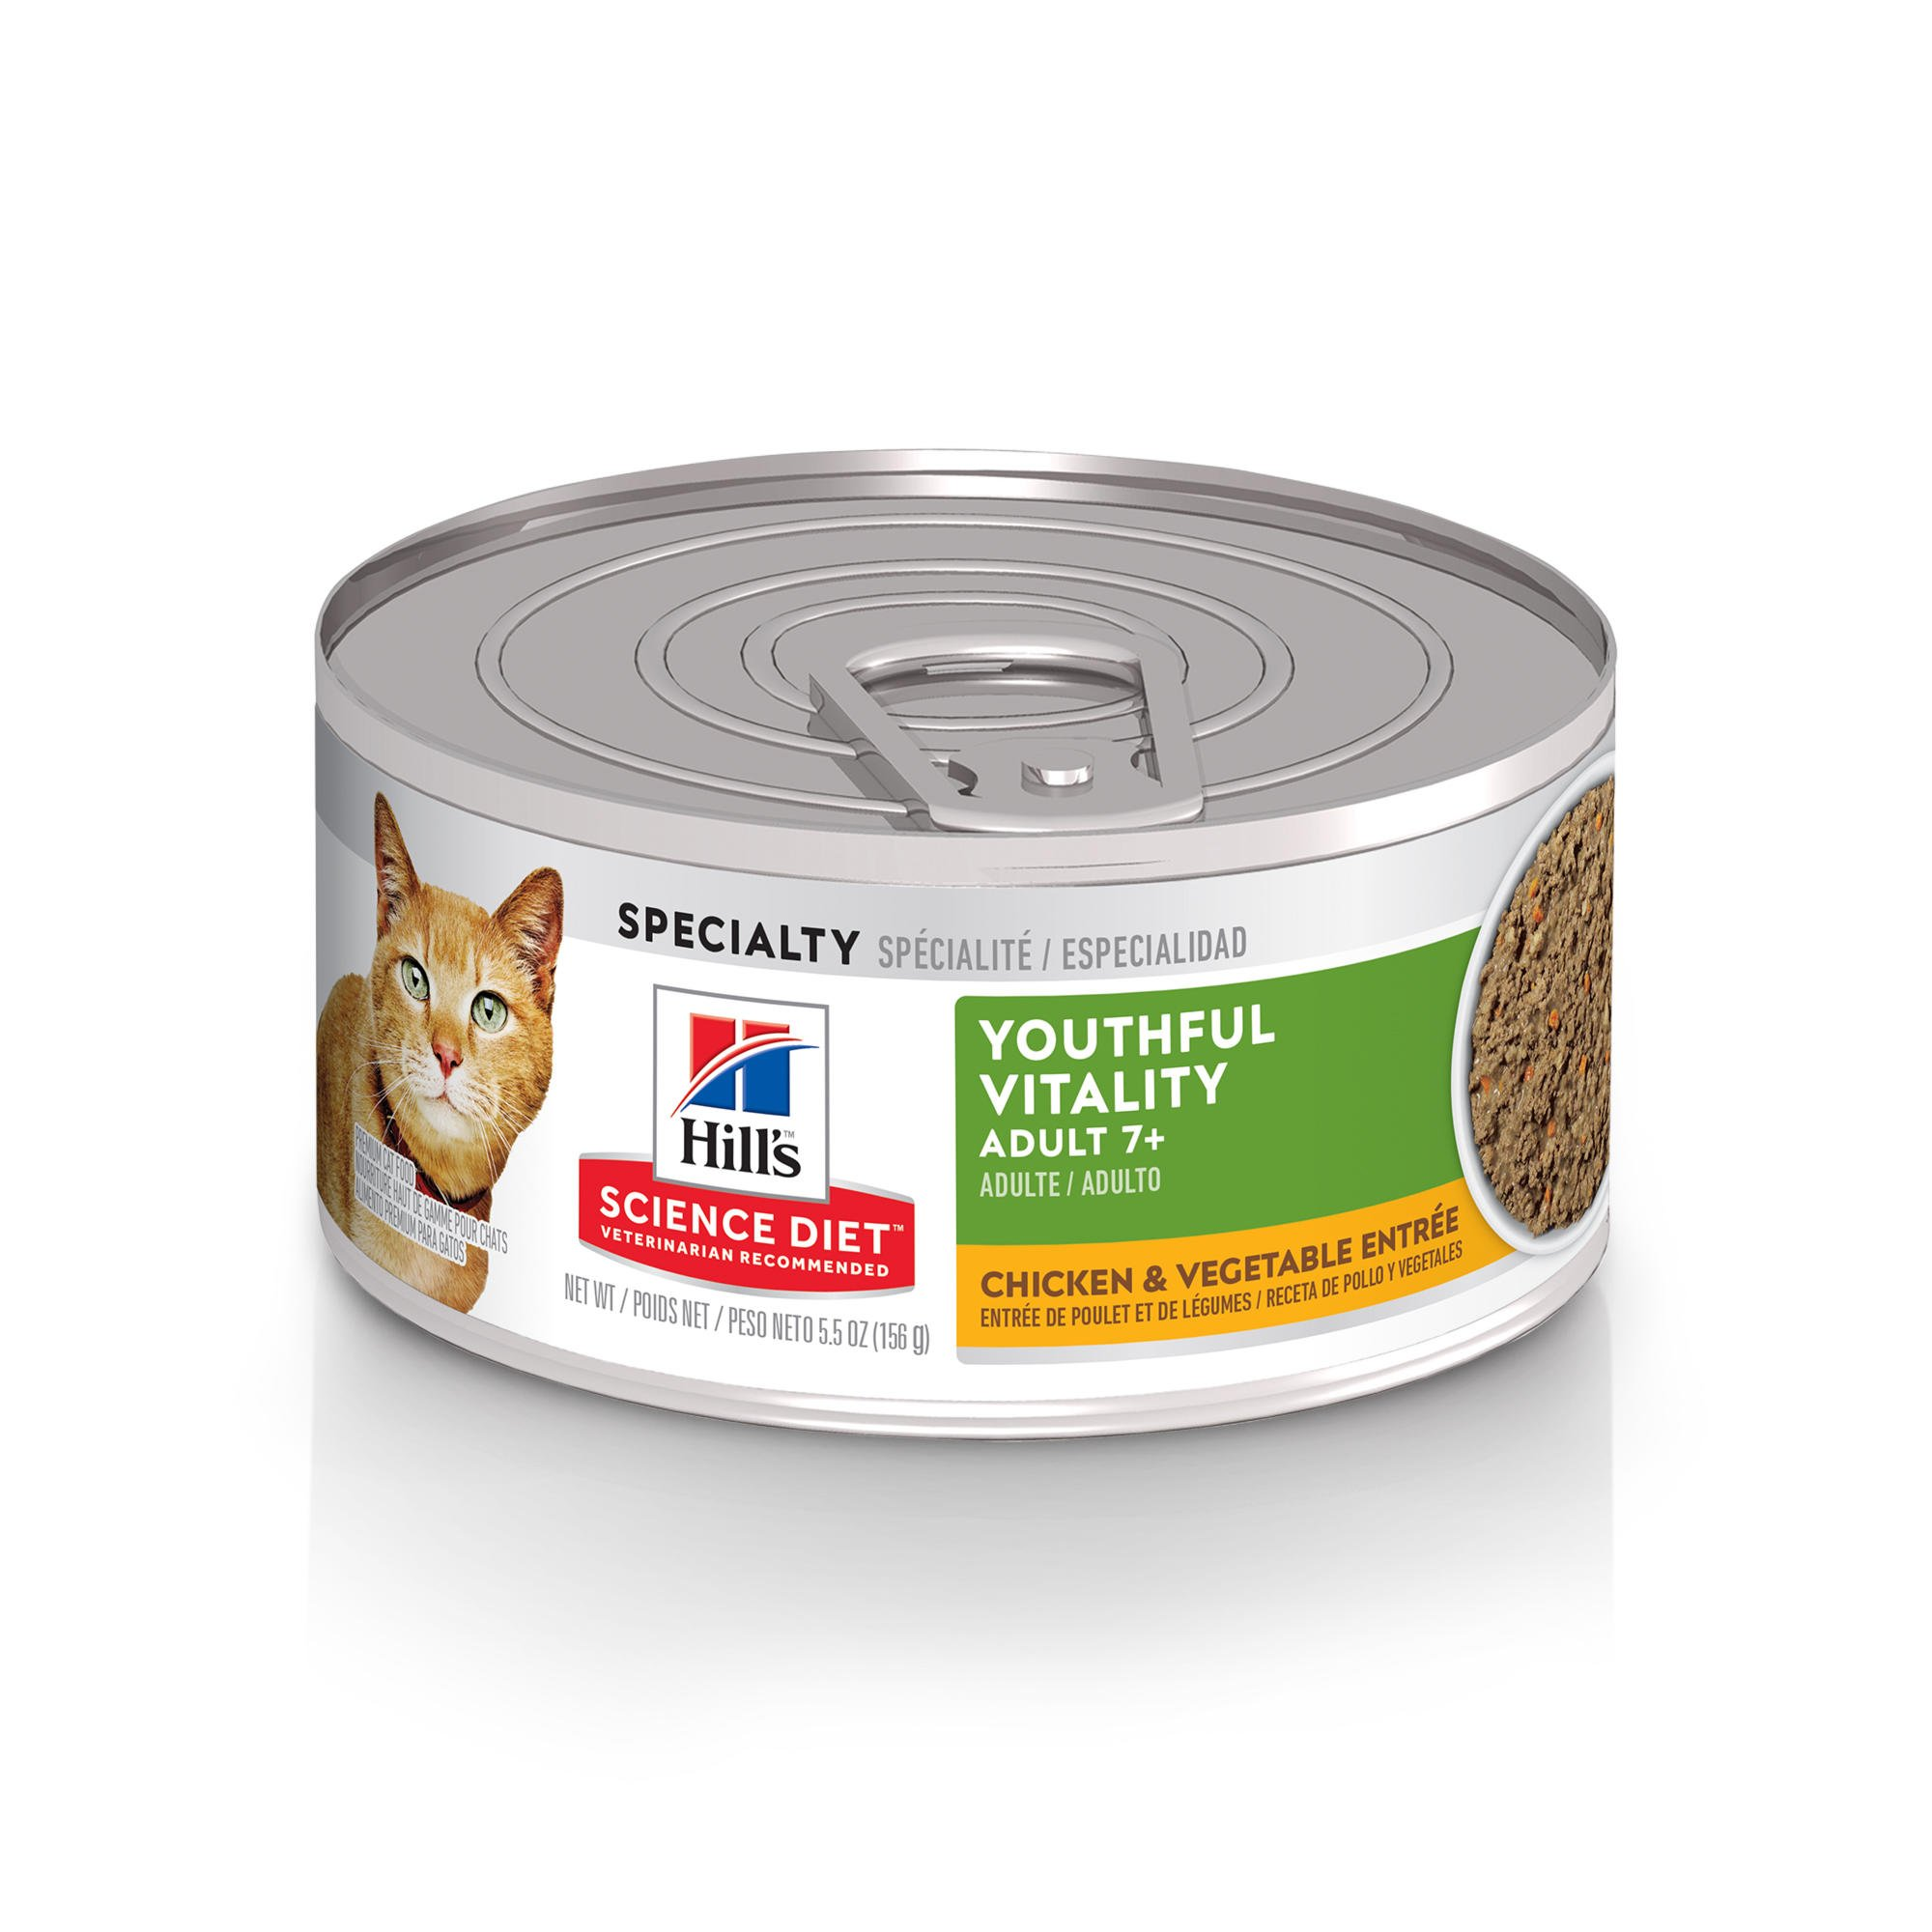 Science Diet Youthful Vitality Cat Food